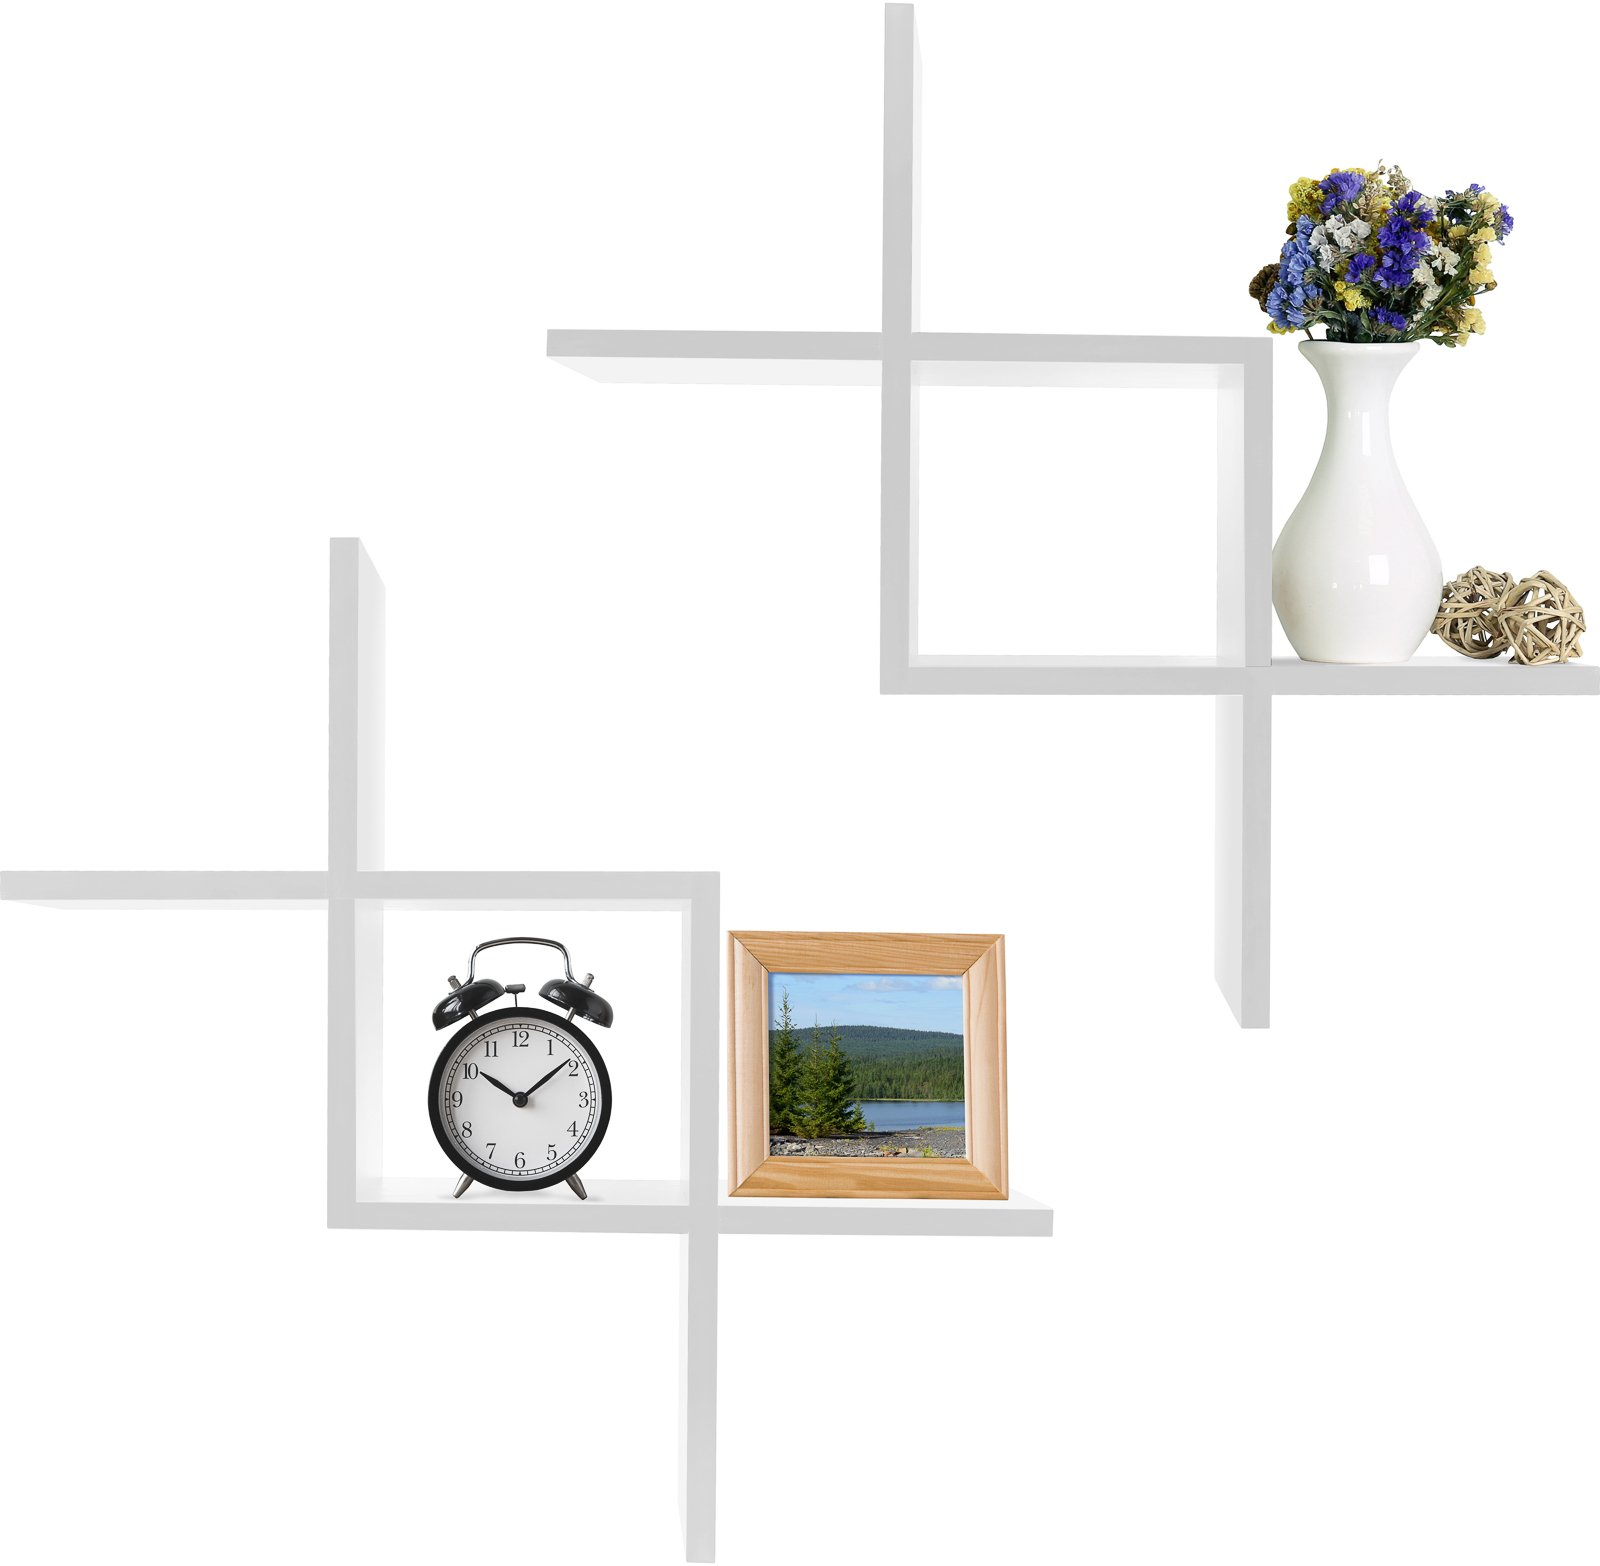 Greenco Criss Cross Intersecting Wall Mounted Floating Shelves Finish, 2-Pack, White